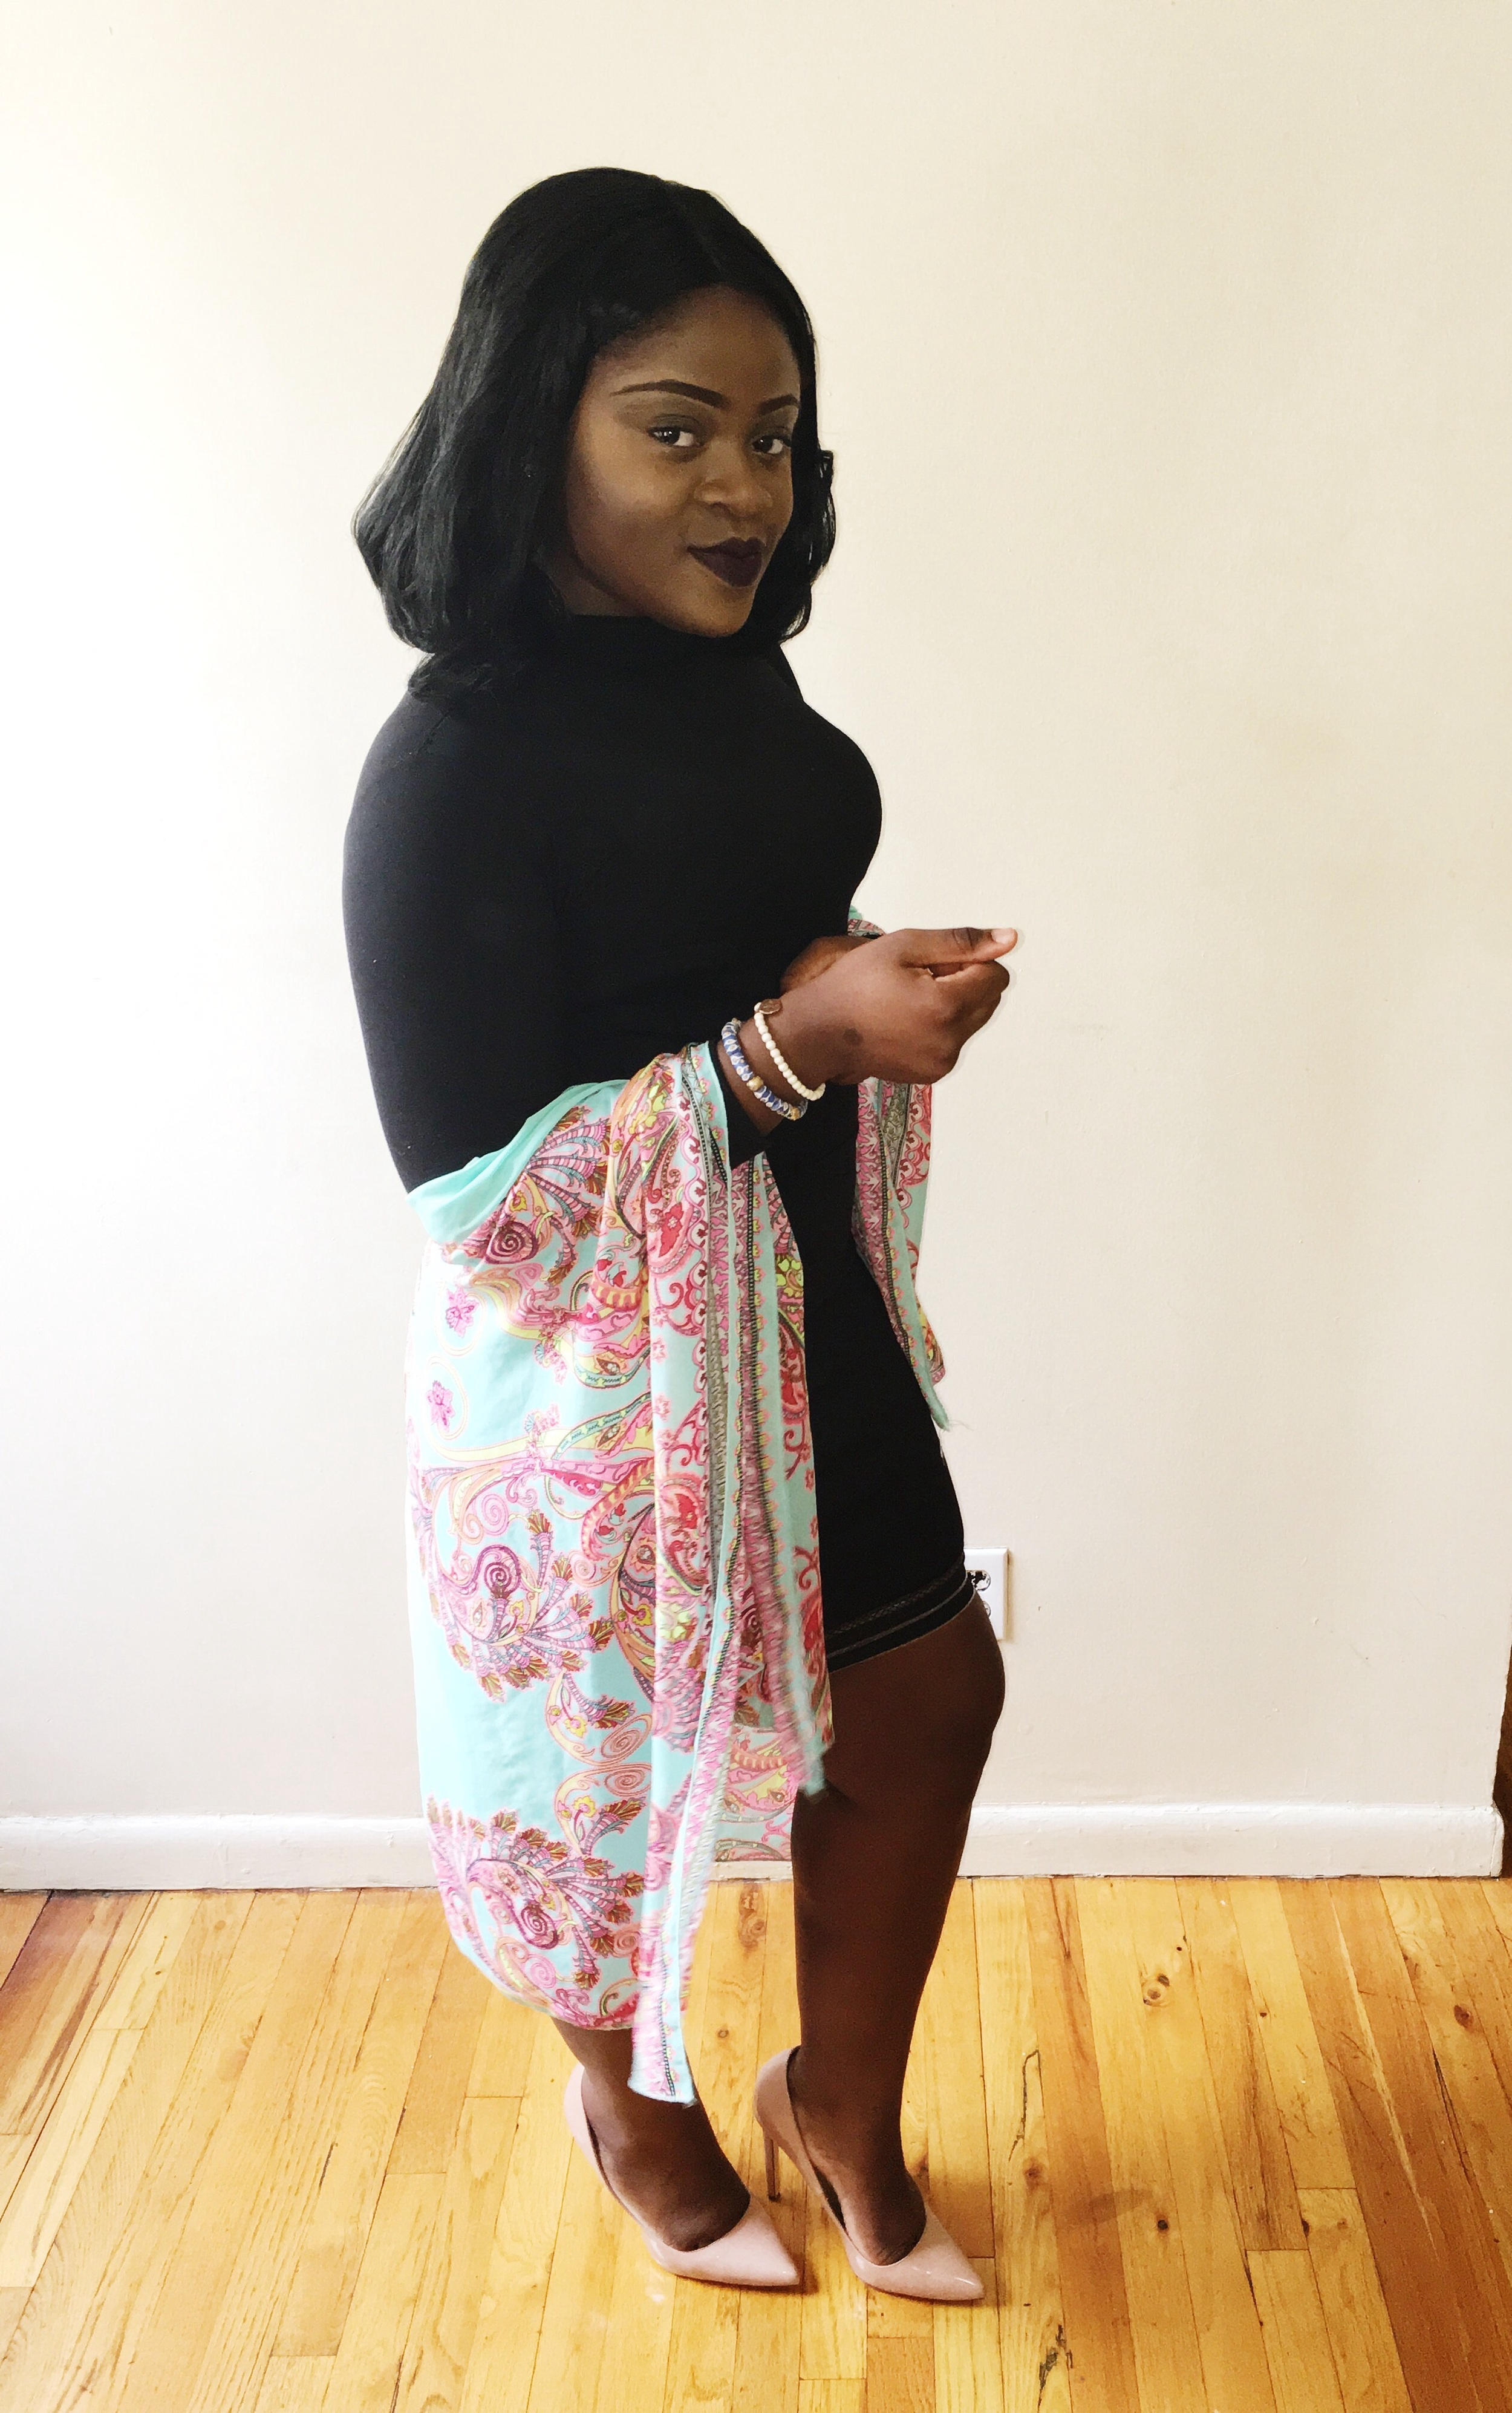 So for Easter Sunday 3/27/16 I decided to wear All Black (Lol) I know your thinking but why? Black is my color like I can wear all black all week in different styles and be ok.. But on Easter Sunday I wanted to have a little color for victory! So I added a floral wrap and nude pair of heels to make it POP